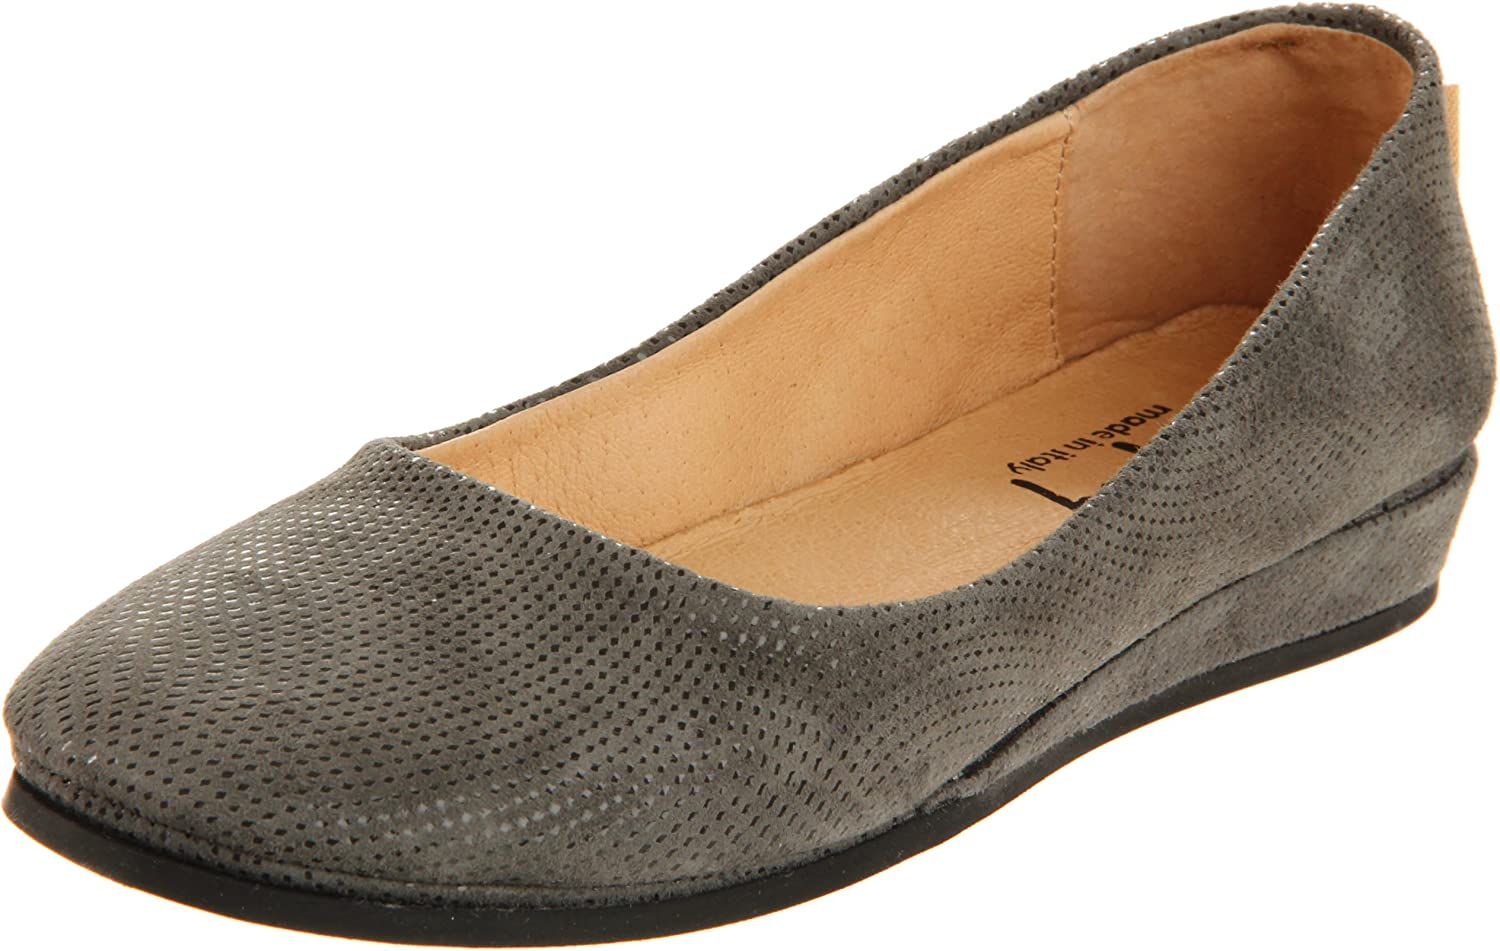 French We Ranking TOP17 OFFer at cheap prices Sole Women's Zeppa Slip Shoes on